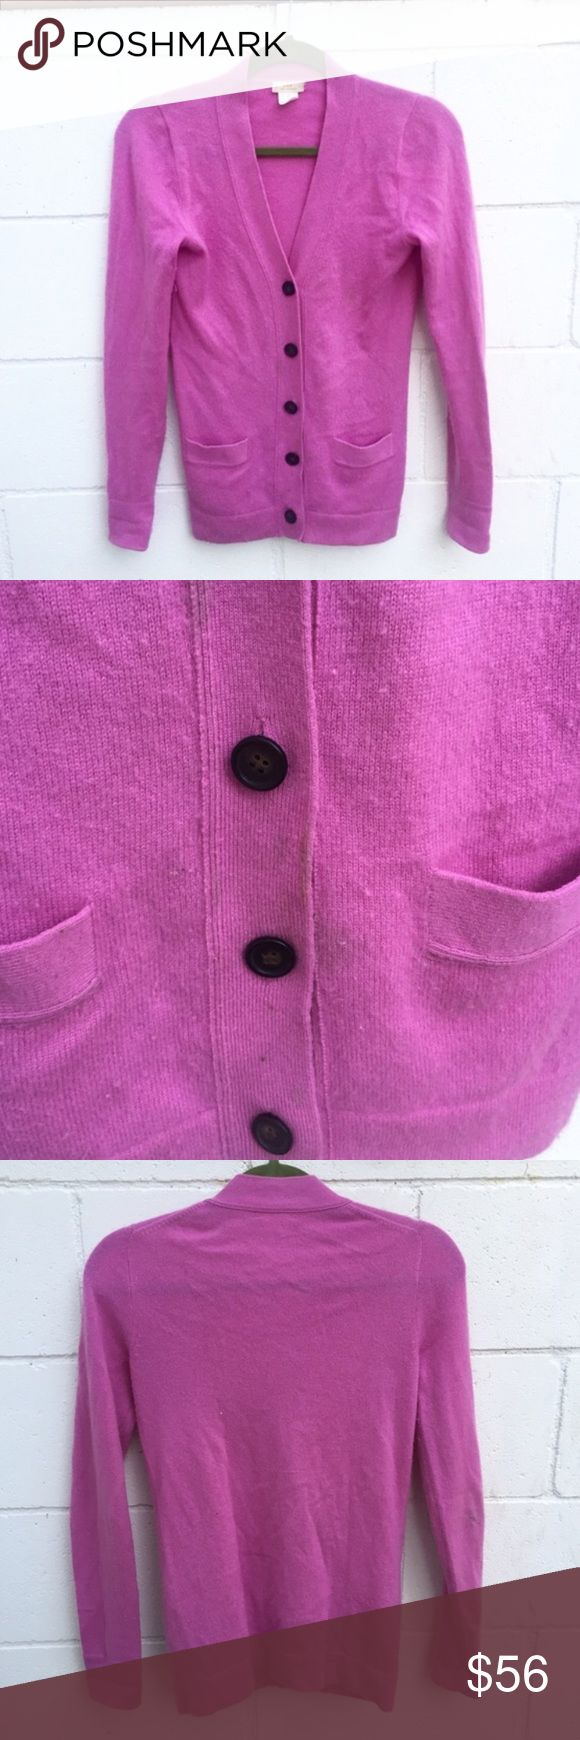 J. Crew Cashmere Hot Pink Cardigan Sweater Adorable Hot Pink Cardigan. 100% Cashmere. There's a few smalls stains as show in pictures, and material is a bit pilly. Has a small hole. Adds a pop of color to an outfit!! J. Crew Sweaters Cardigans